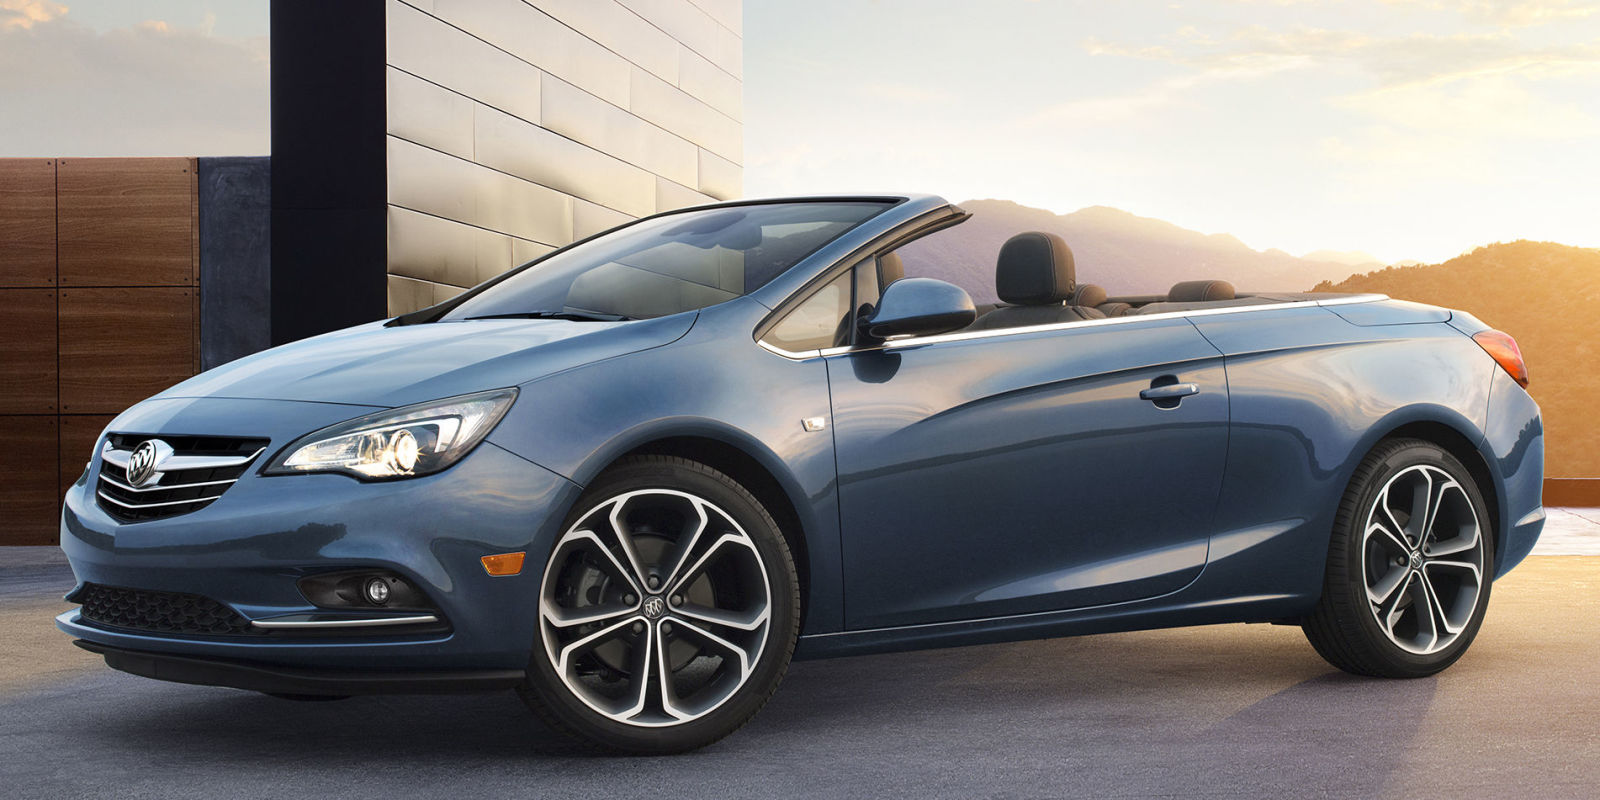 2016 Buick Cascada Photo Gallery